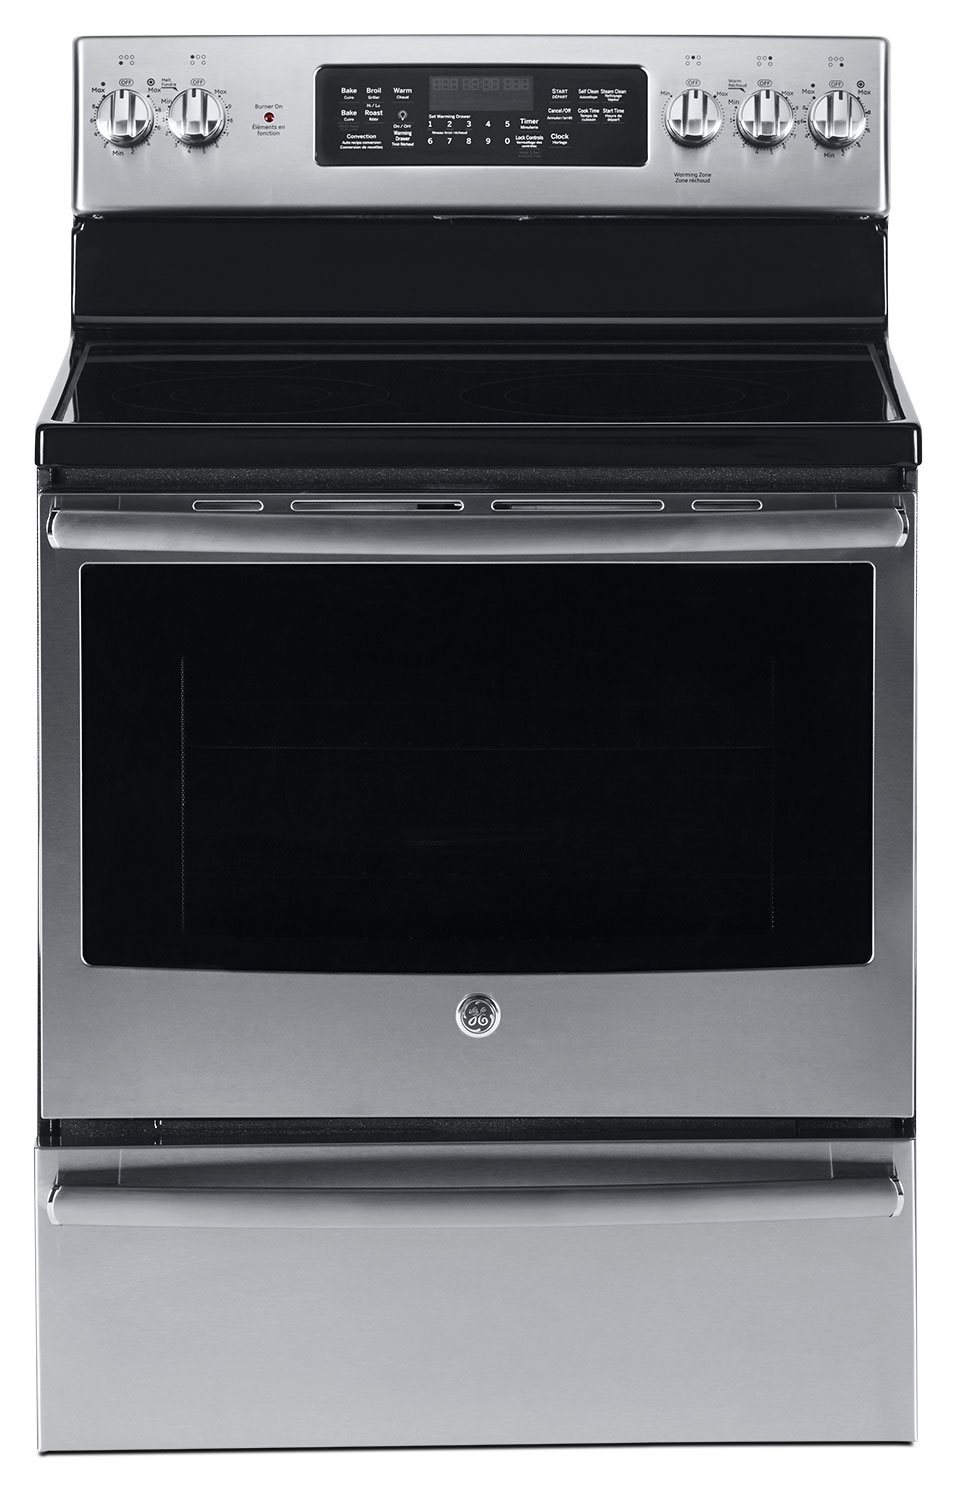 Cooking Products - GE 5.0 Cu. Ft. Freestanding Electric Range with Warming Drawer – JCB860SKSS